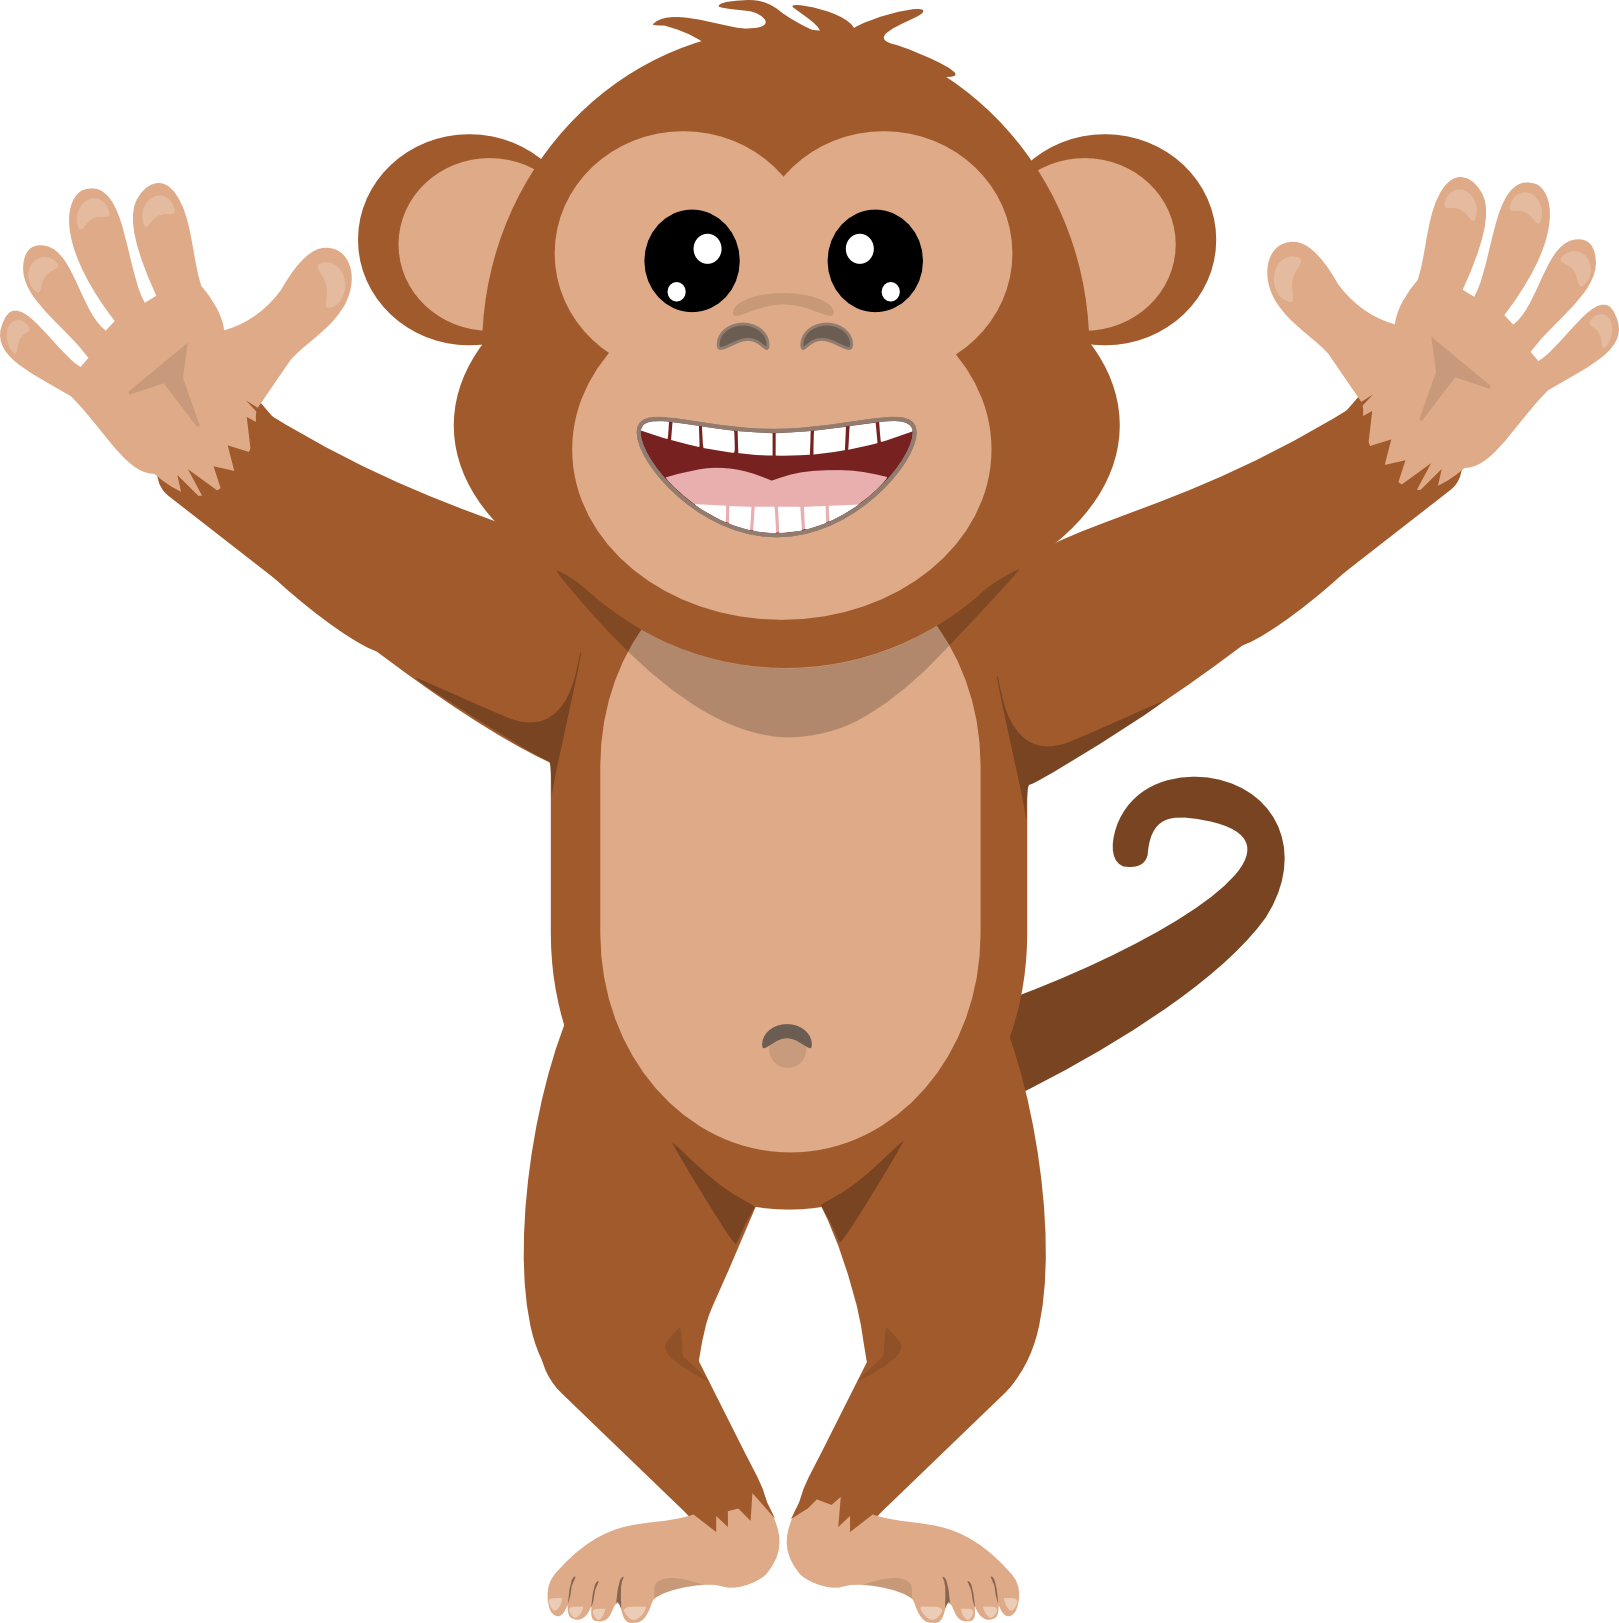 Monkey with a crown clipart clipart black and white stock Clipart math monkey - Graphics - Illustrations - Free Download on ... clipart black and white stock